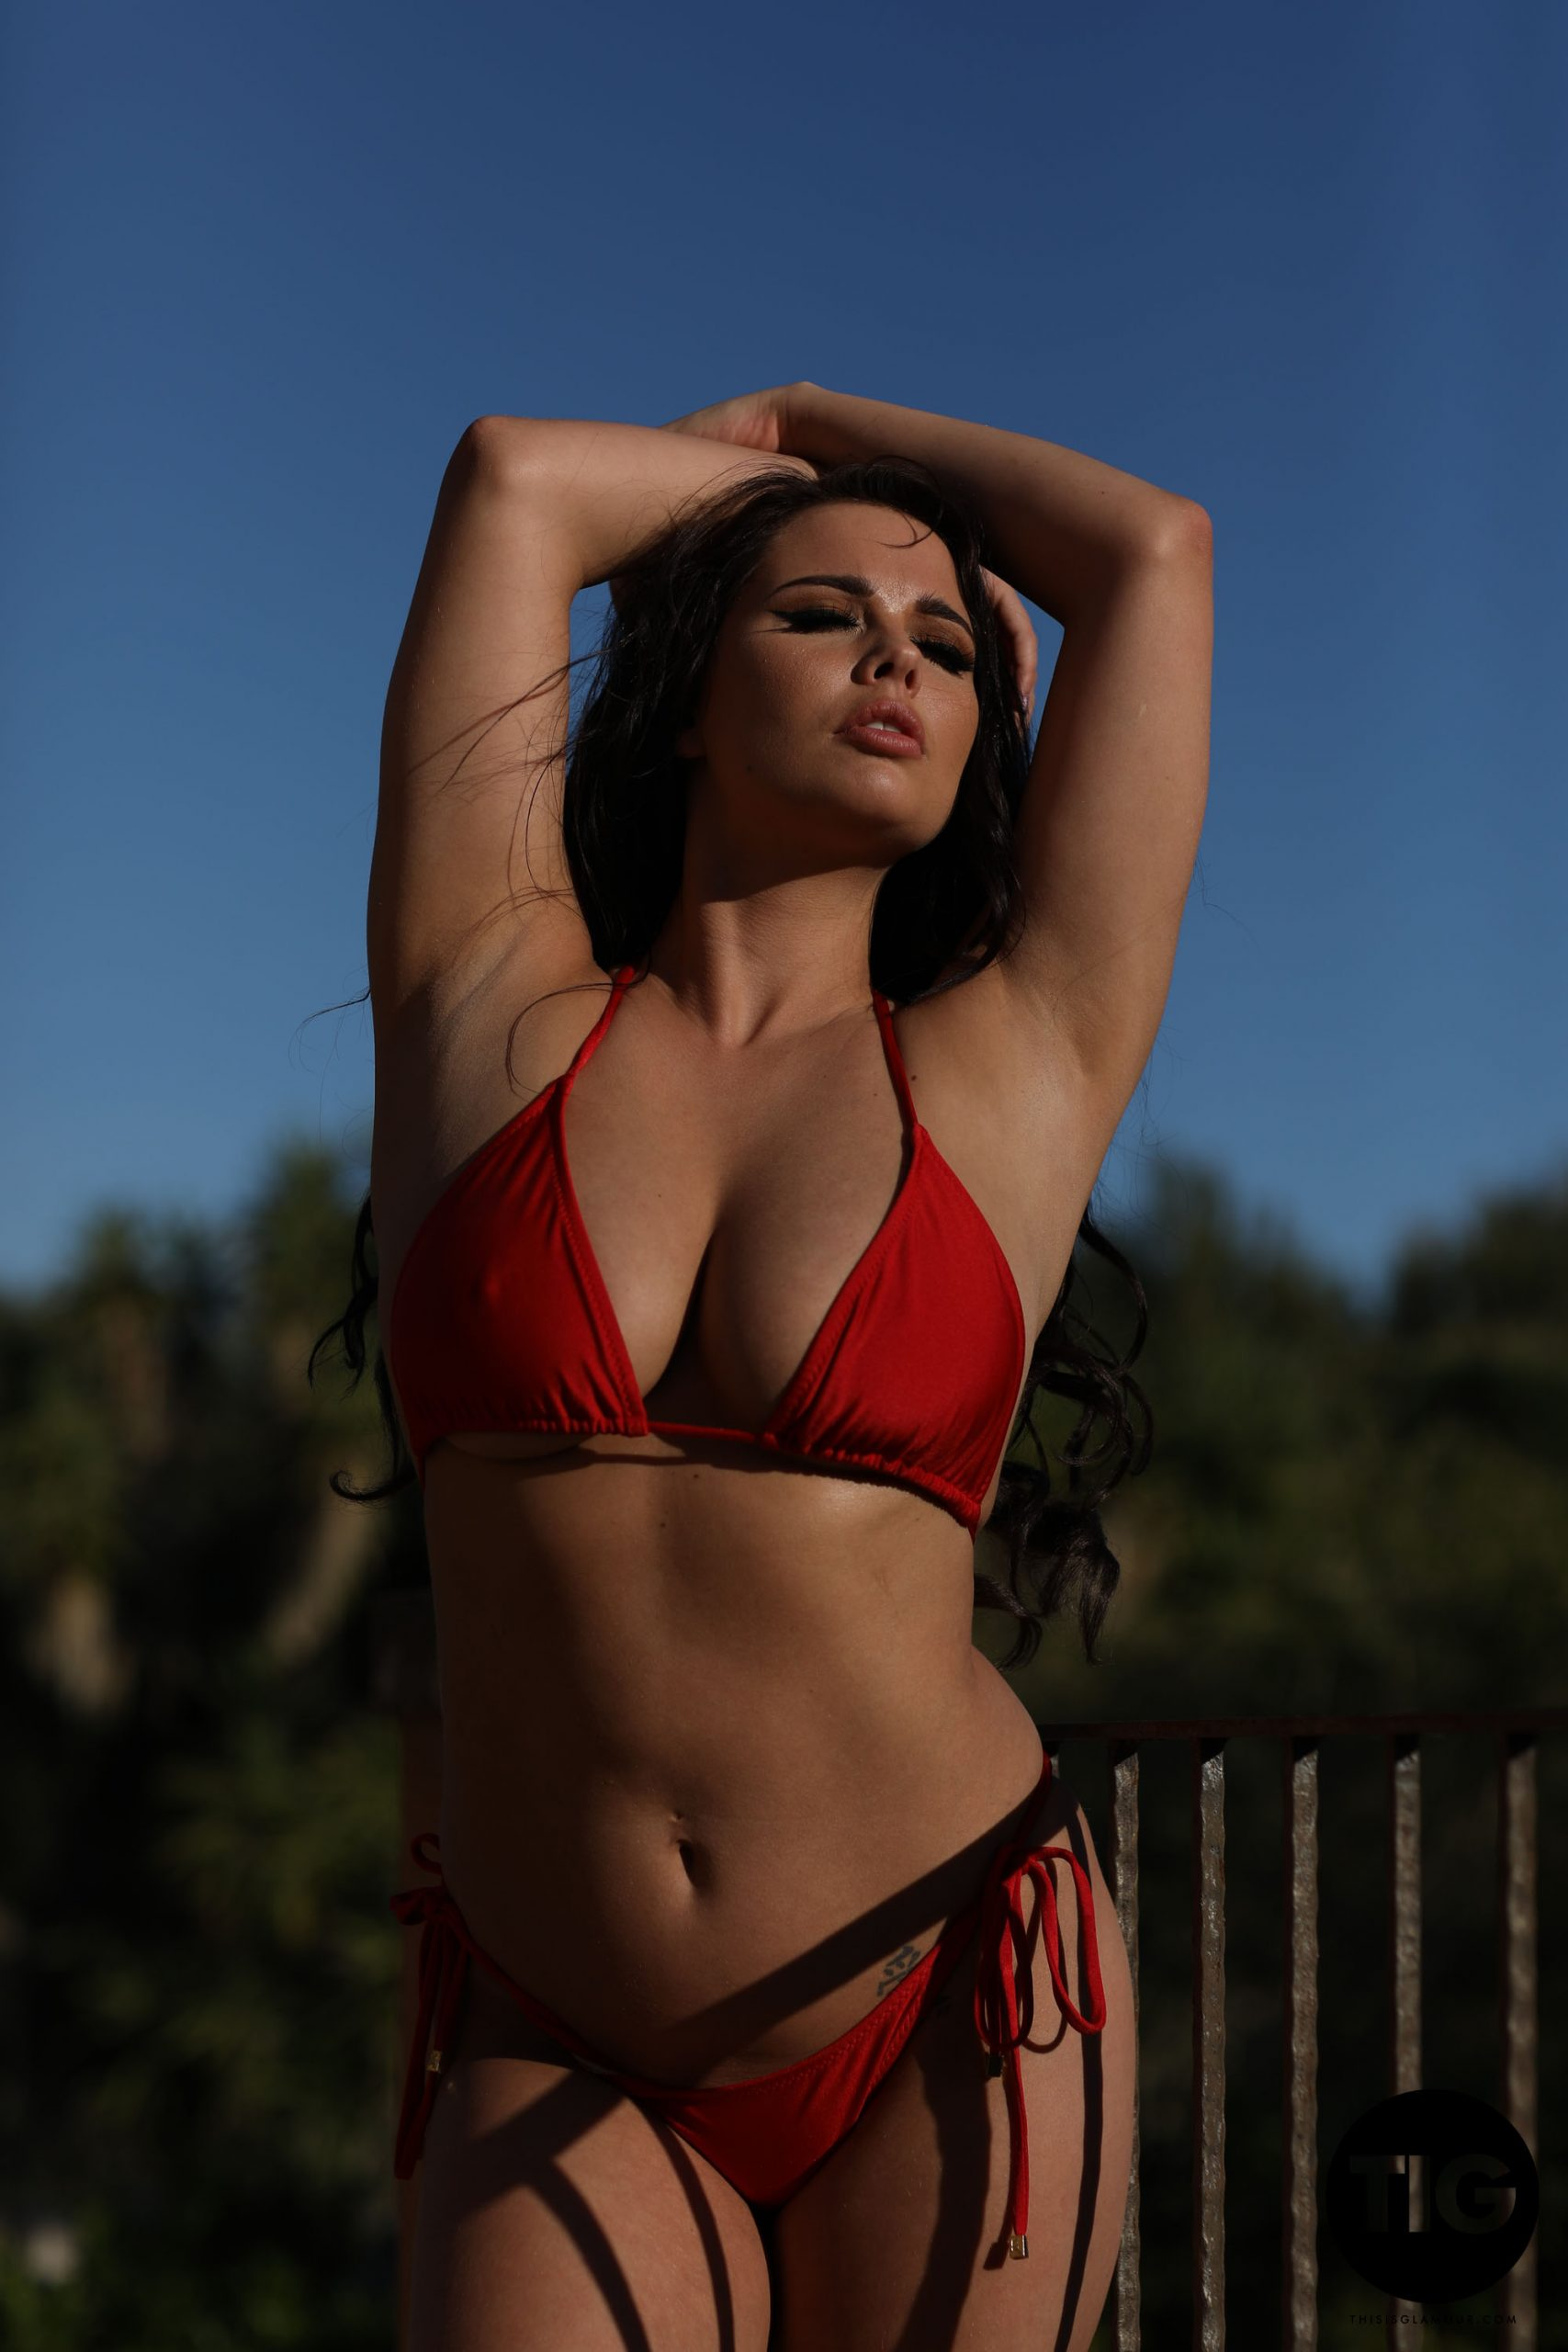 Kym Graham Big Tits in Red Bikini